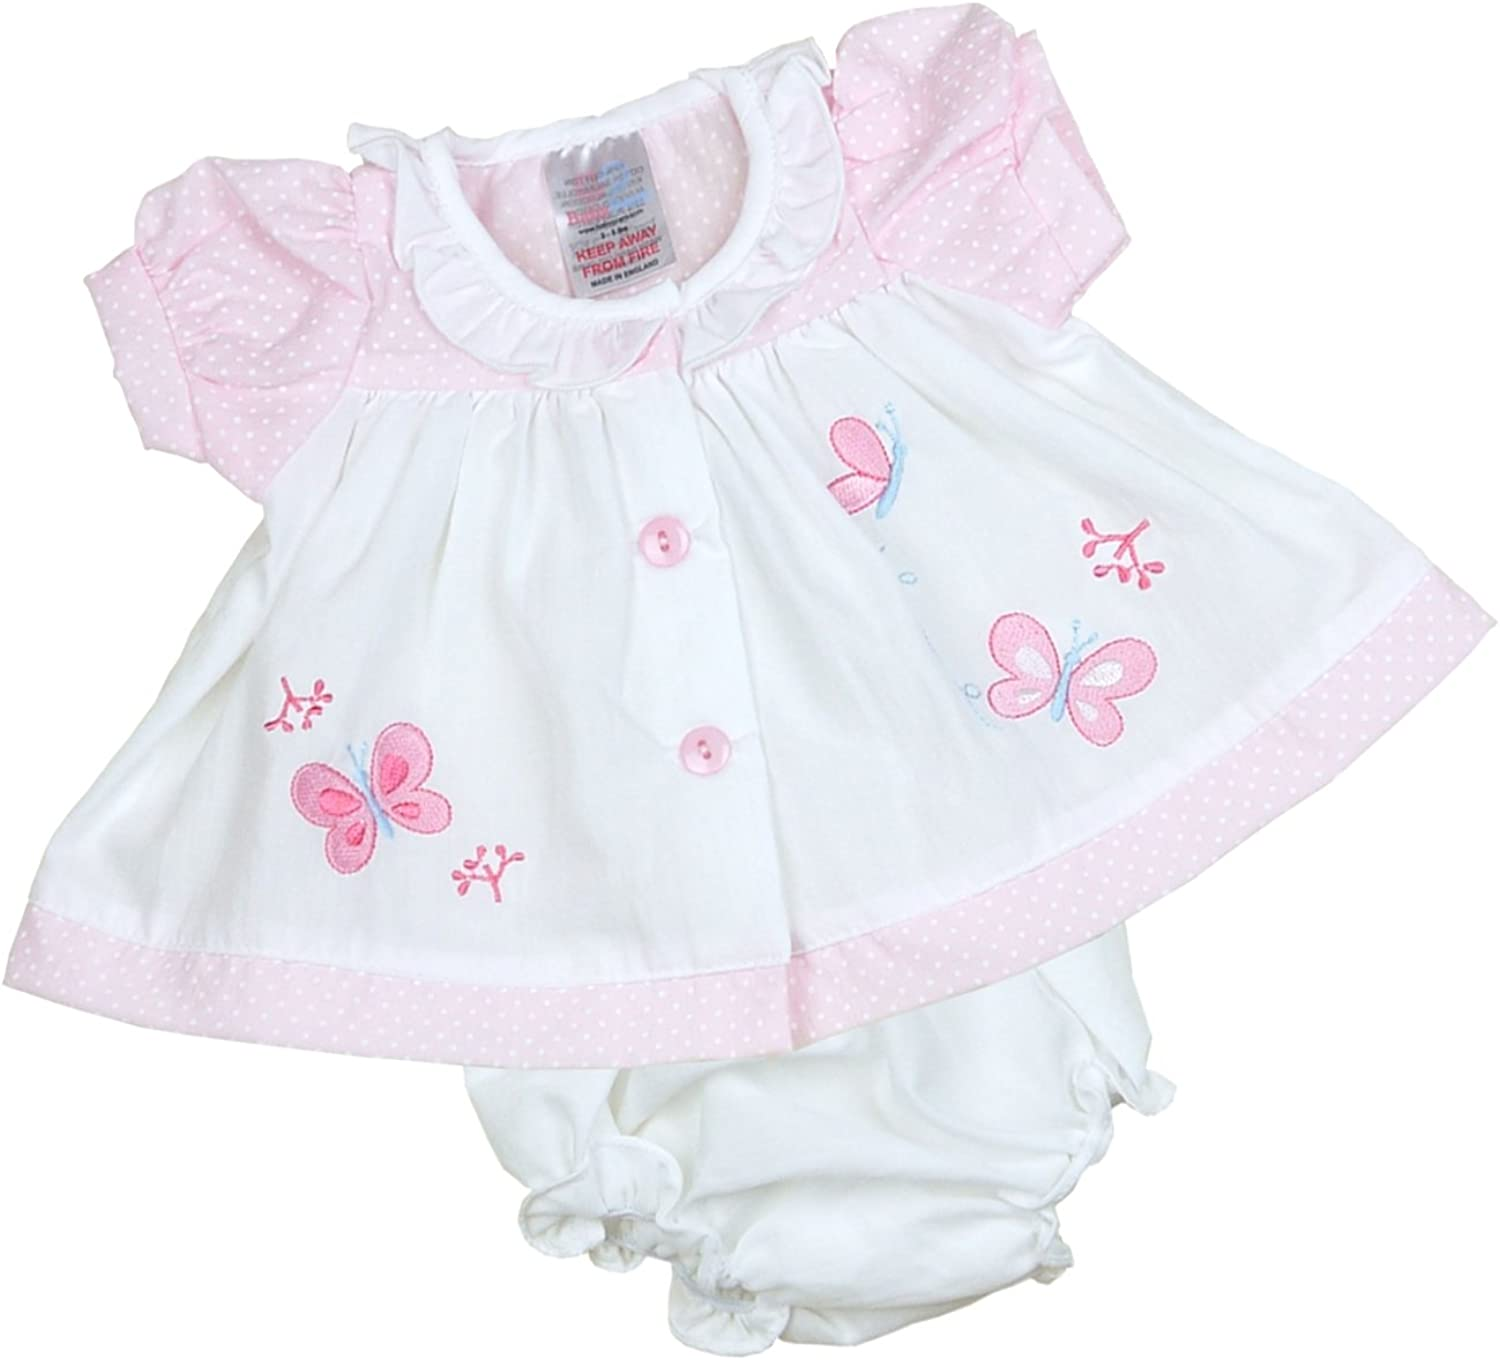 Long-awaited Babyprem Preemie Baby Dress Knickers Butterfly Set Cloth Max 73% OFF Girls